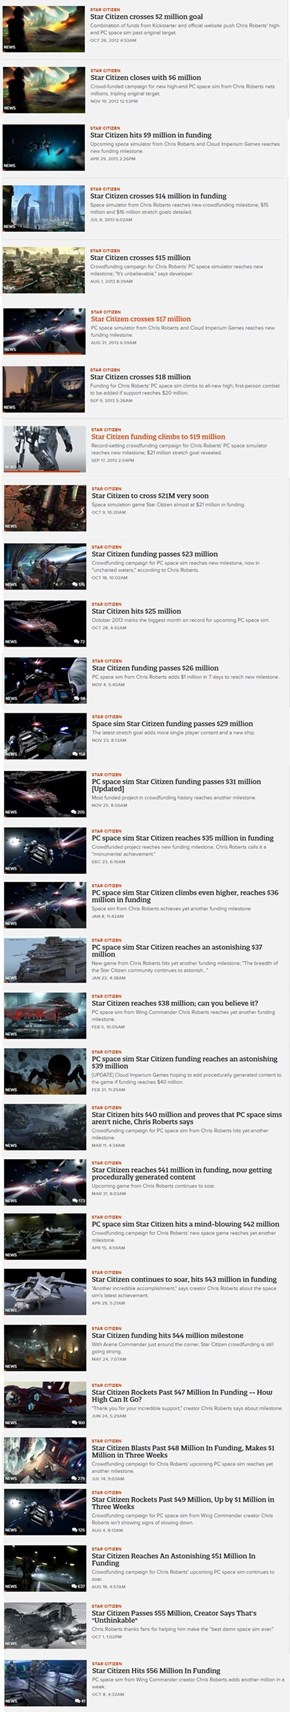 Curious About How Much Funding Star Citizen Has? GameSpot is Your Source for All Hard Games Journalism